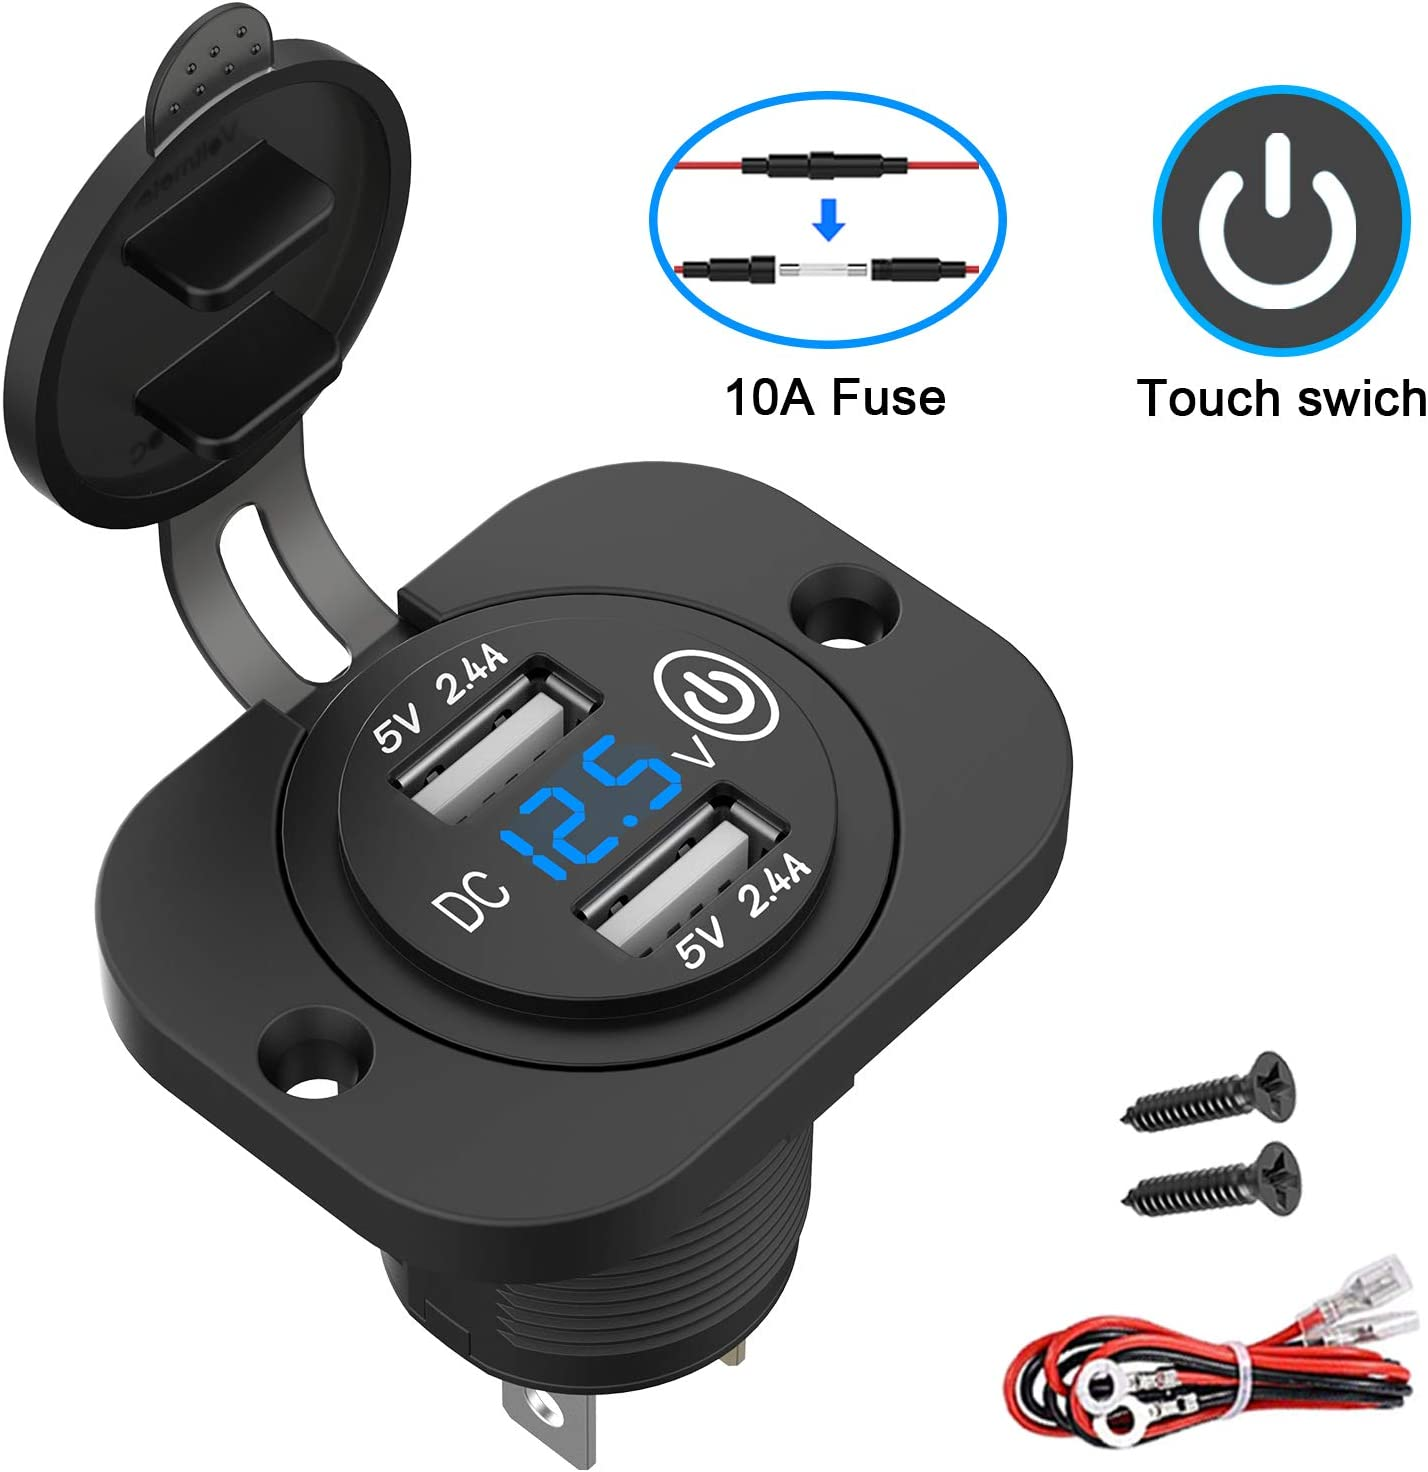 Dual 2.4A USB Car Charger with Waterproof Cover and Panel for Motorcycle ATV Camper Tractor Truck Marine Boat Qidoe 12V//24V USB Socket Outlet with Touch Switch and Digital Voltmeter Upgraded Version